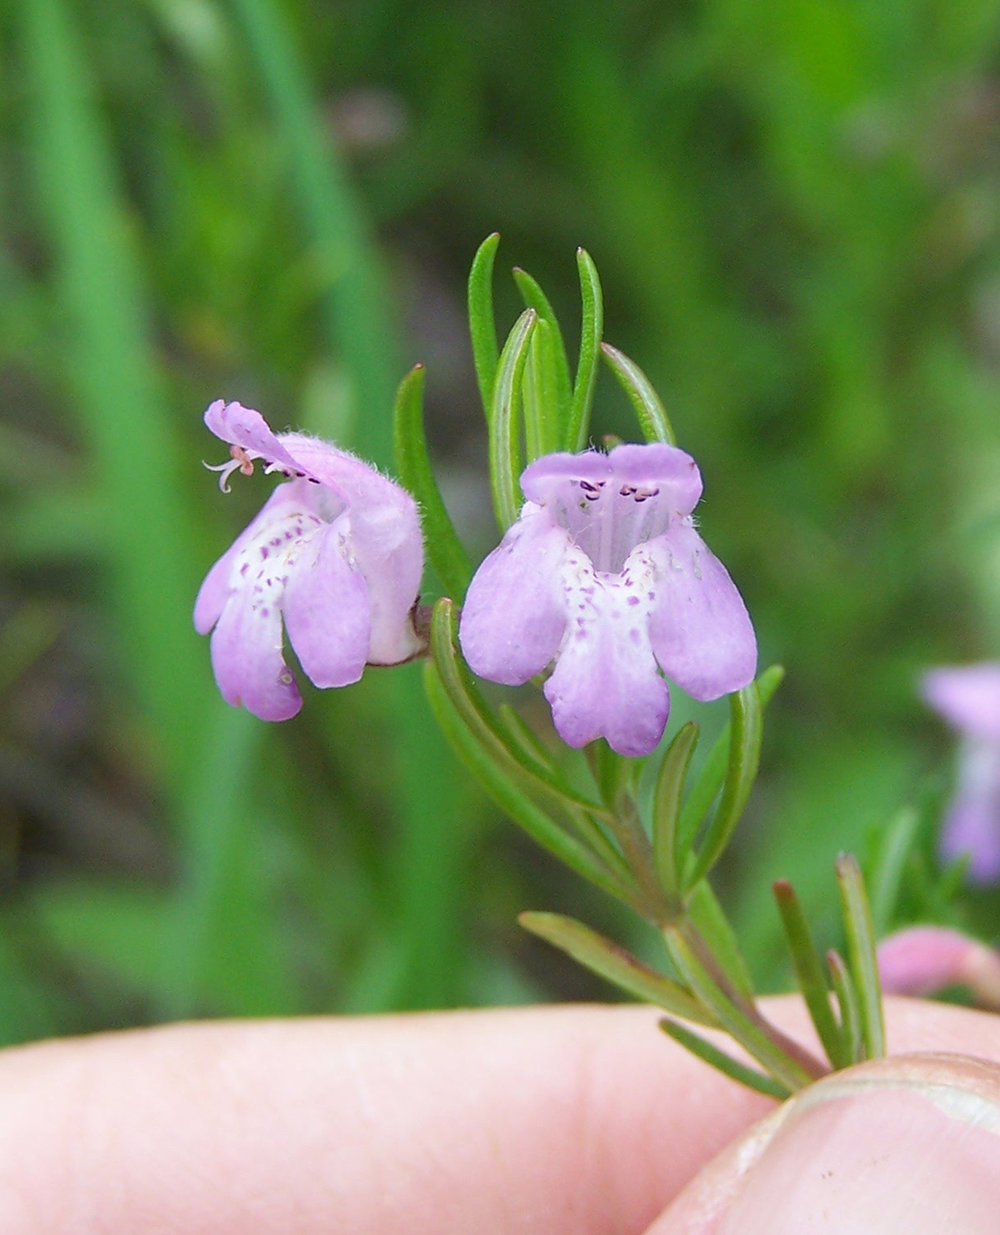 Cumberland Rosemary (Conradina verticillata) is a narrowly endemic species known from just four counties in Tennessee and one county in Kentucky where it is restricted to Cumberland Plateau Sandstone Riverscour Barrens. Photo credit: Dwayne Estes.